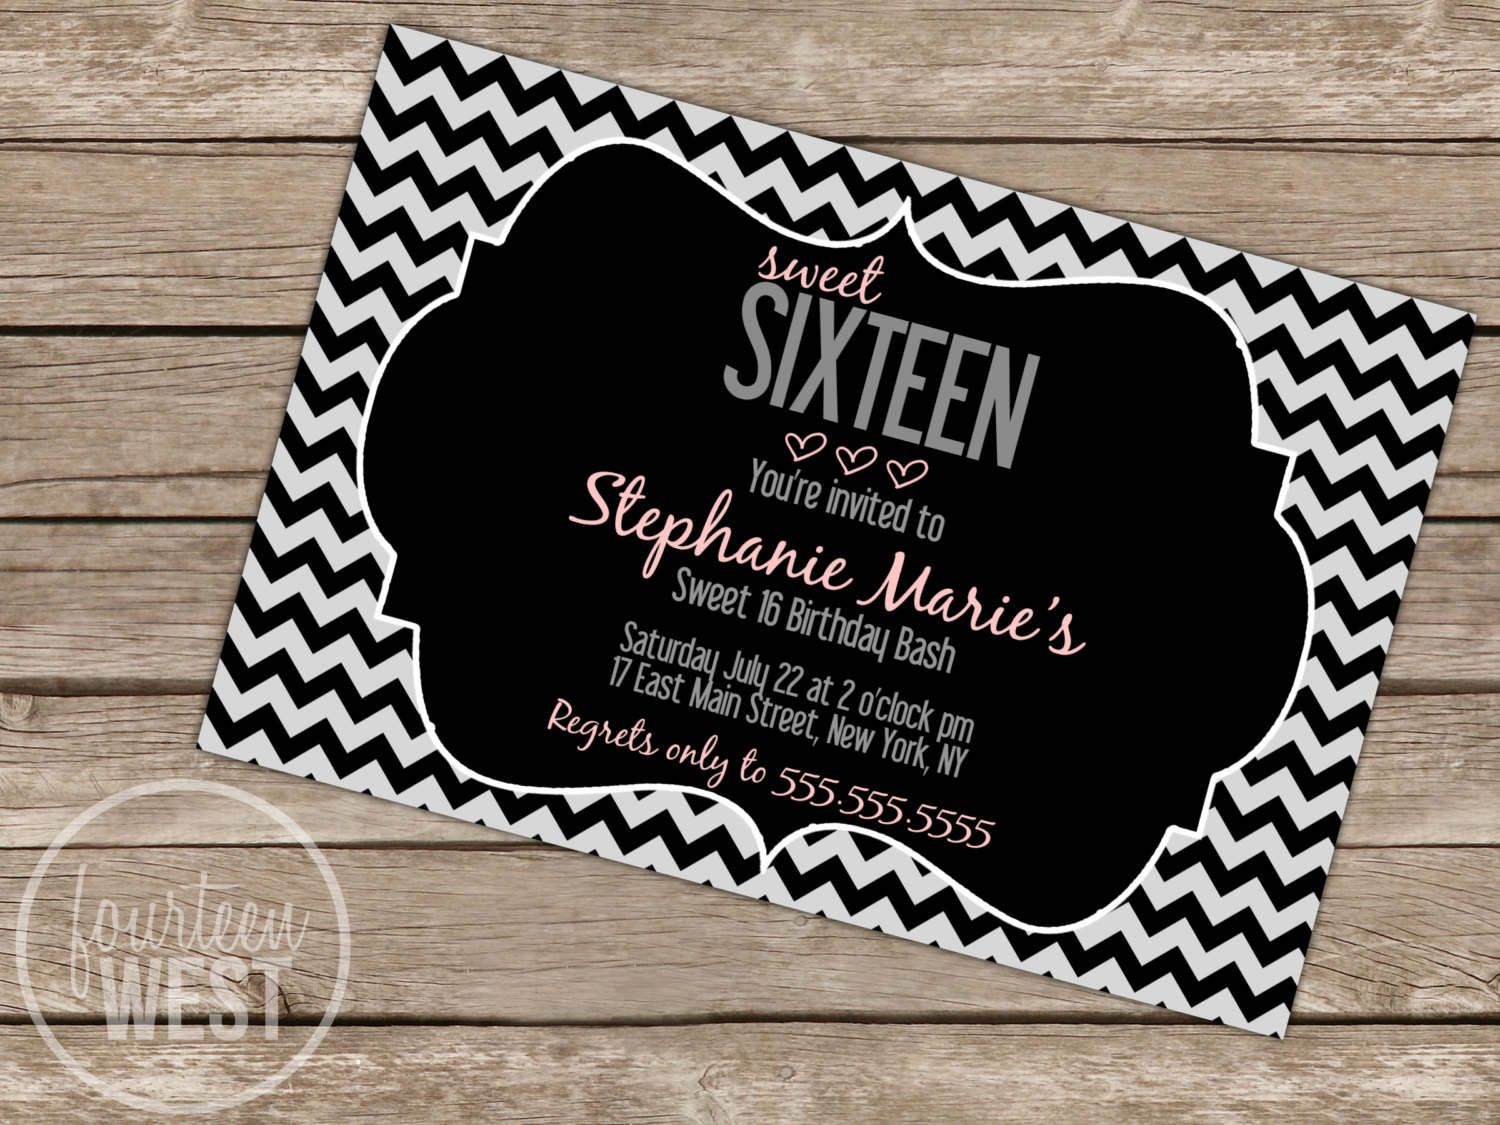 Free printable sweet 16 party invitations invitation sample free printable sweet 16 party invitations filmwisefo Image collections